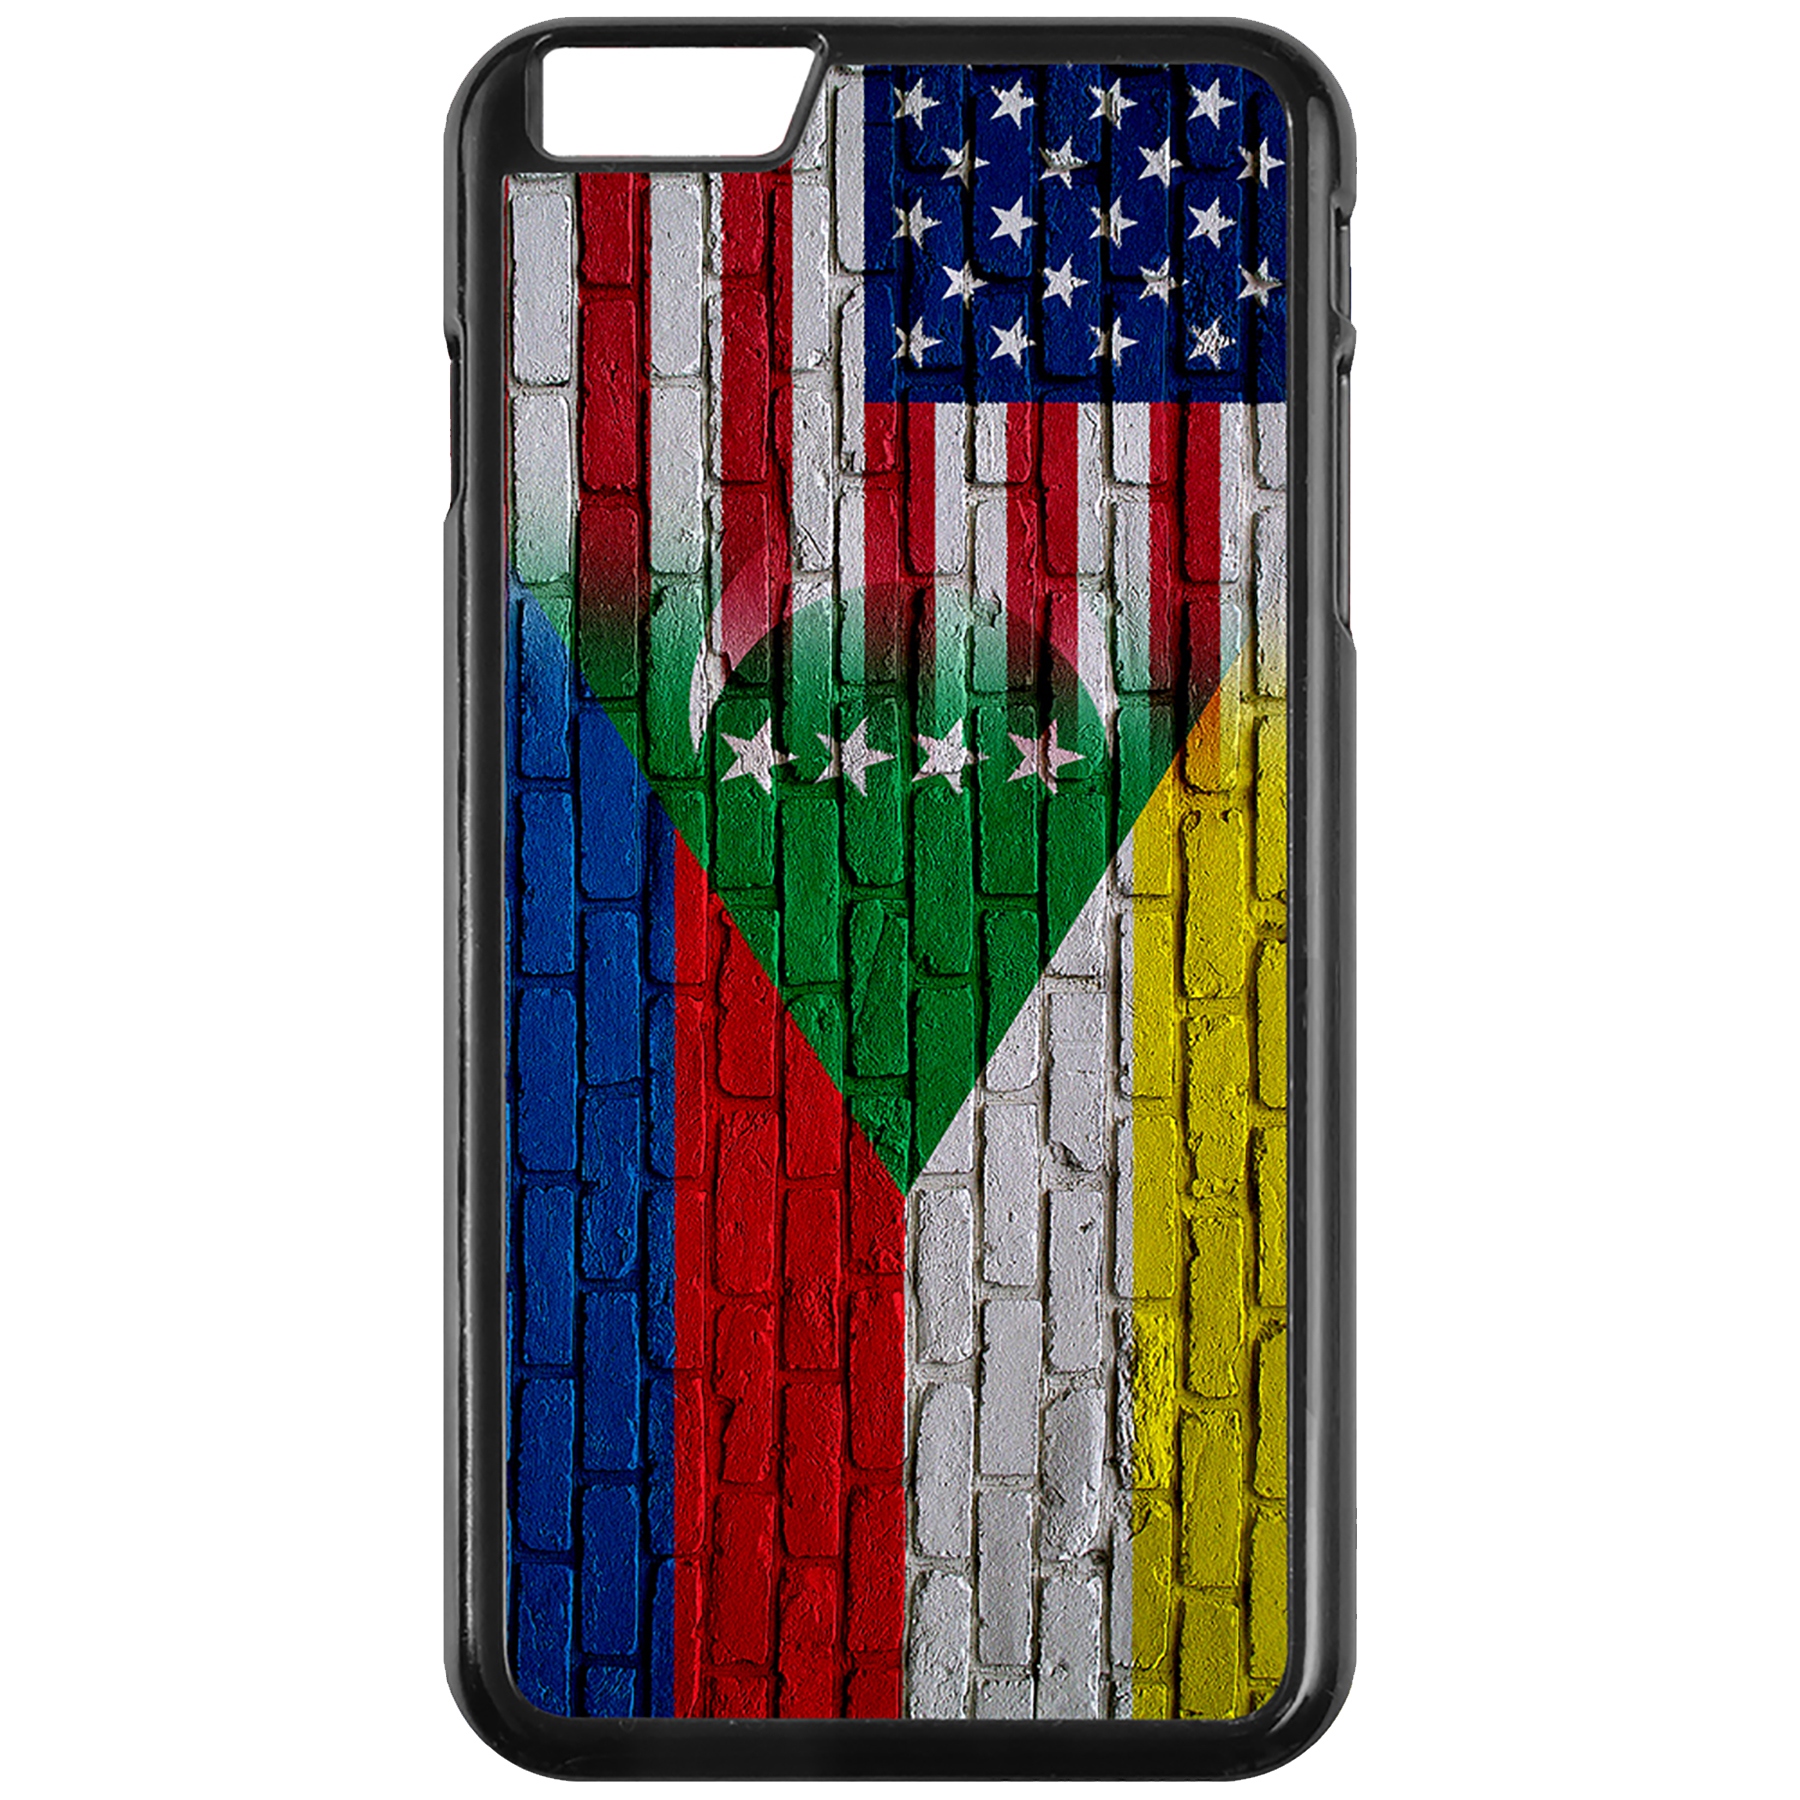 Apple-iPhone-Case-with-Flag-of-Comoros-Comorian-Many-Design-Options thumbnail 61